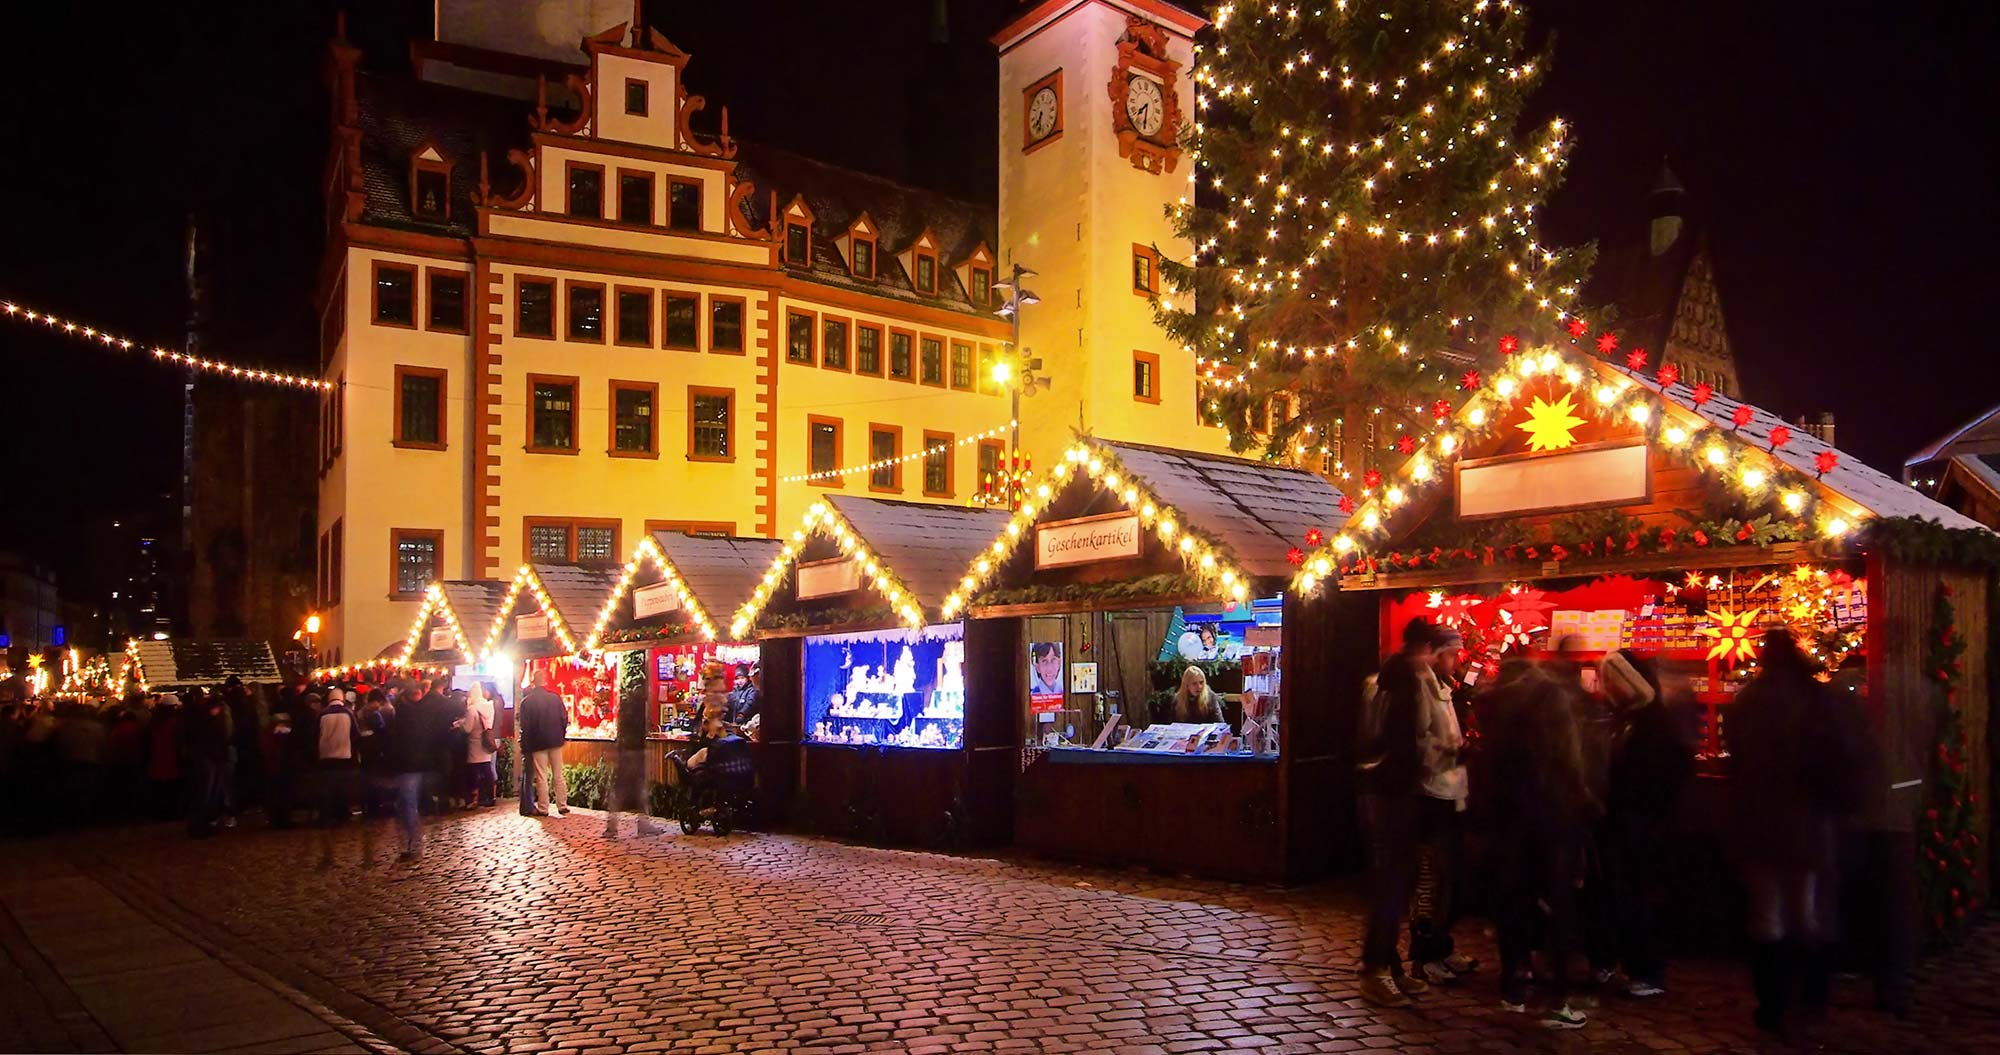 weihnachtsmarkt in chemnitz so ist weihnachten im erzgebirge. Black Bedroom Furniture Sets. Home Design Ideas